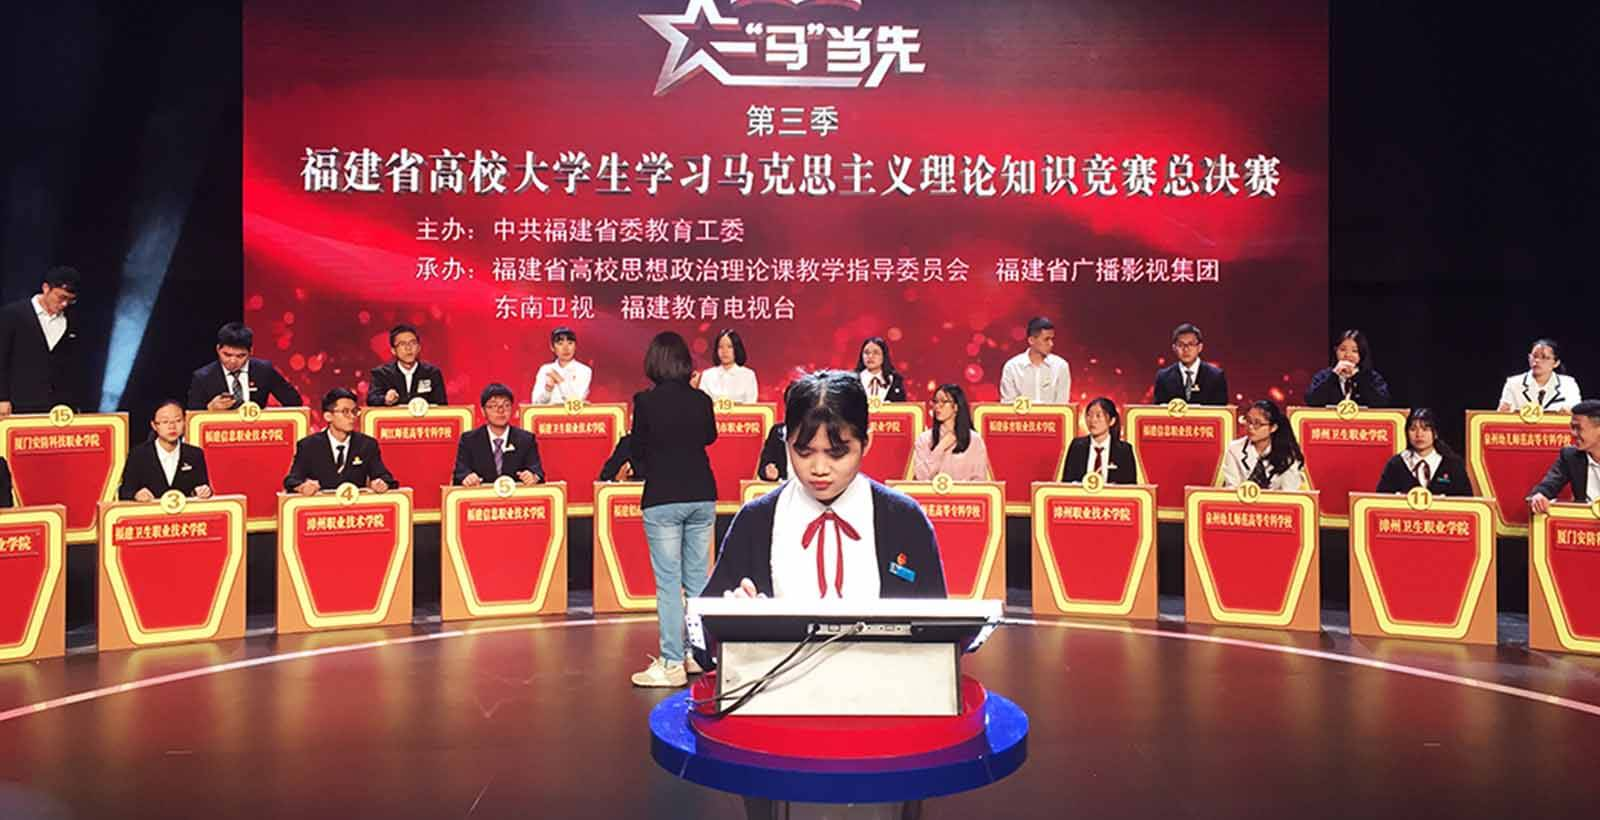 IQ supported The Fujian university knowledge competition